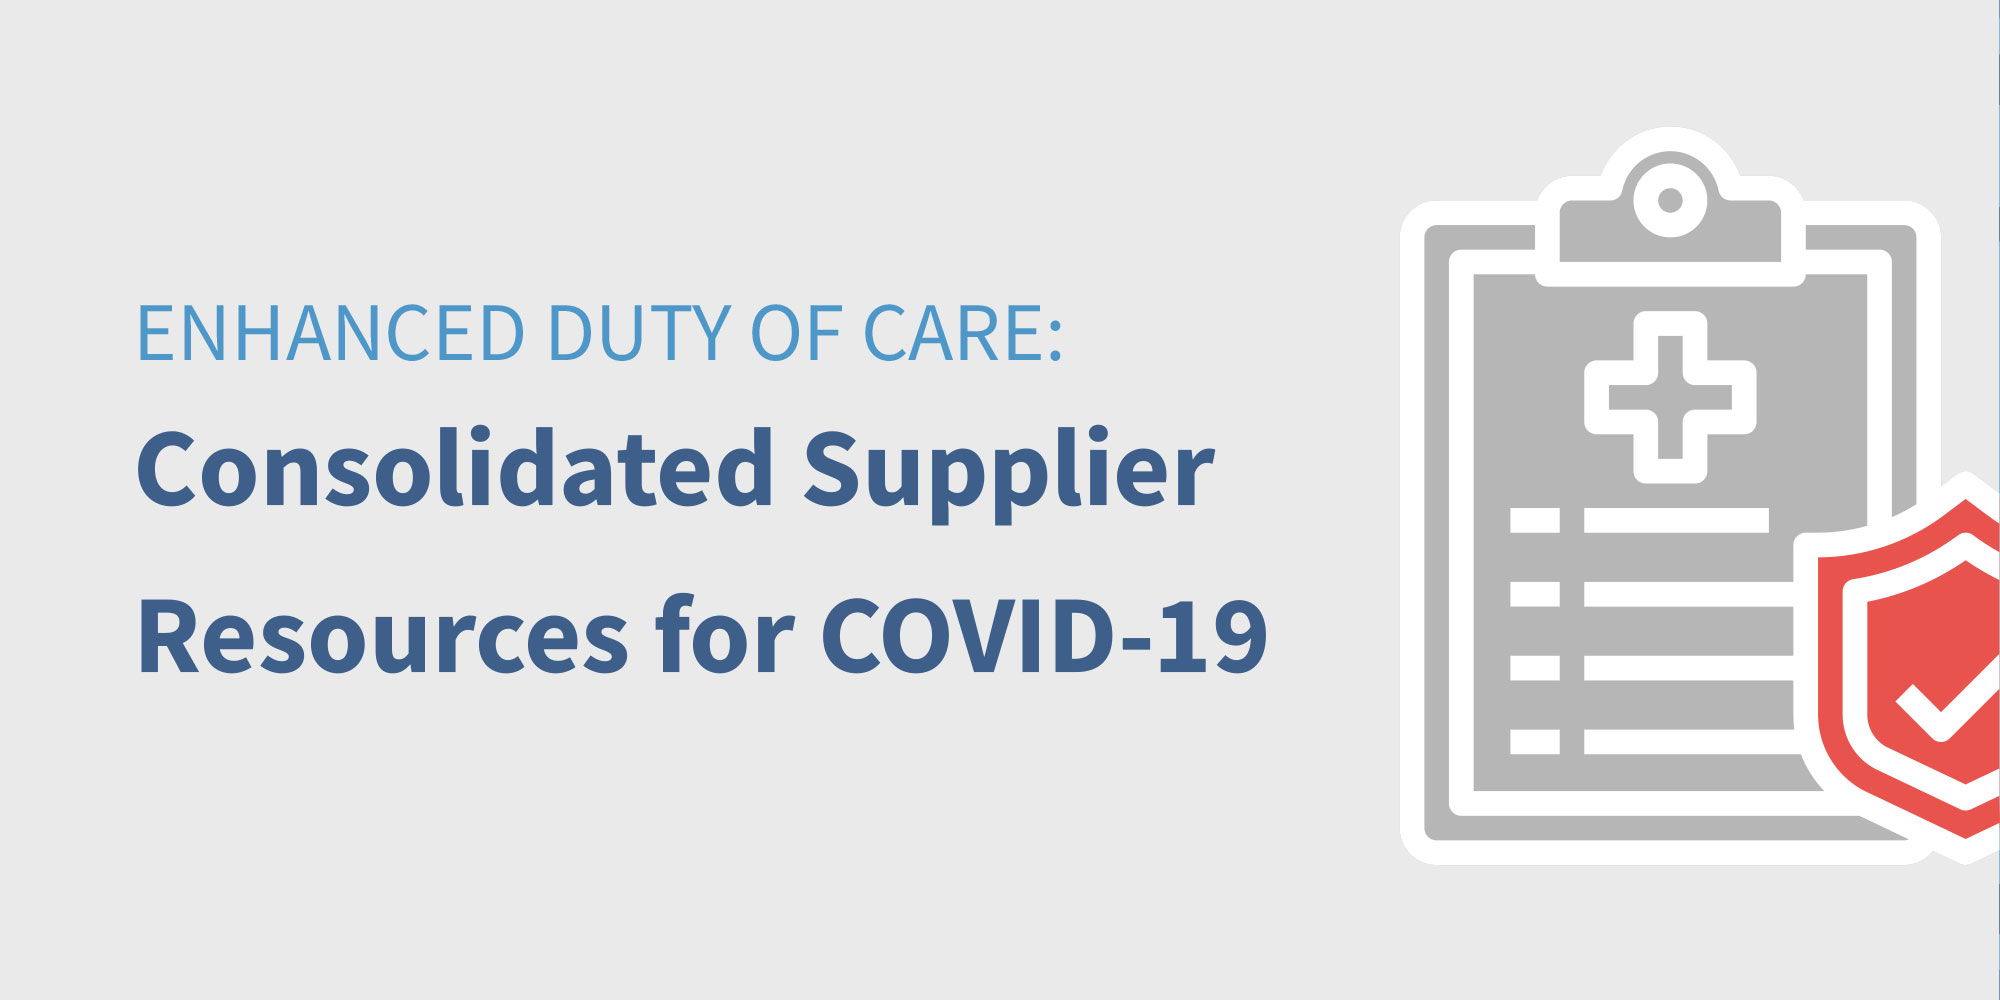 Consolidated Supplier Resources for Duty of Care Featured Image